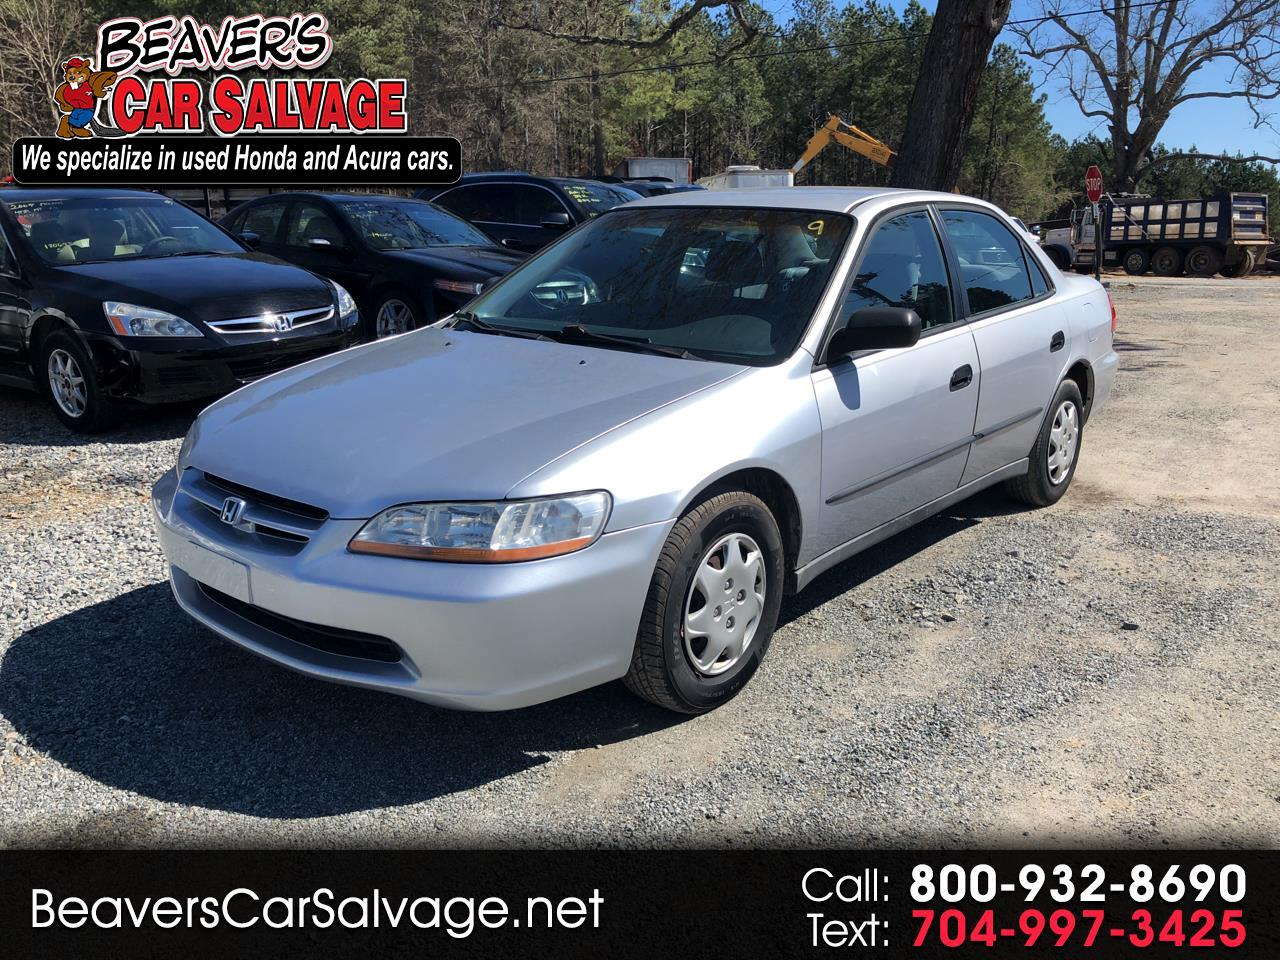 1998 Honda Accord Sdn 4dr Sdn DX Manual